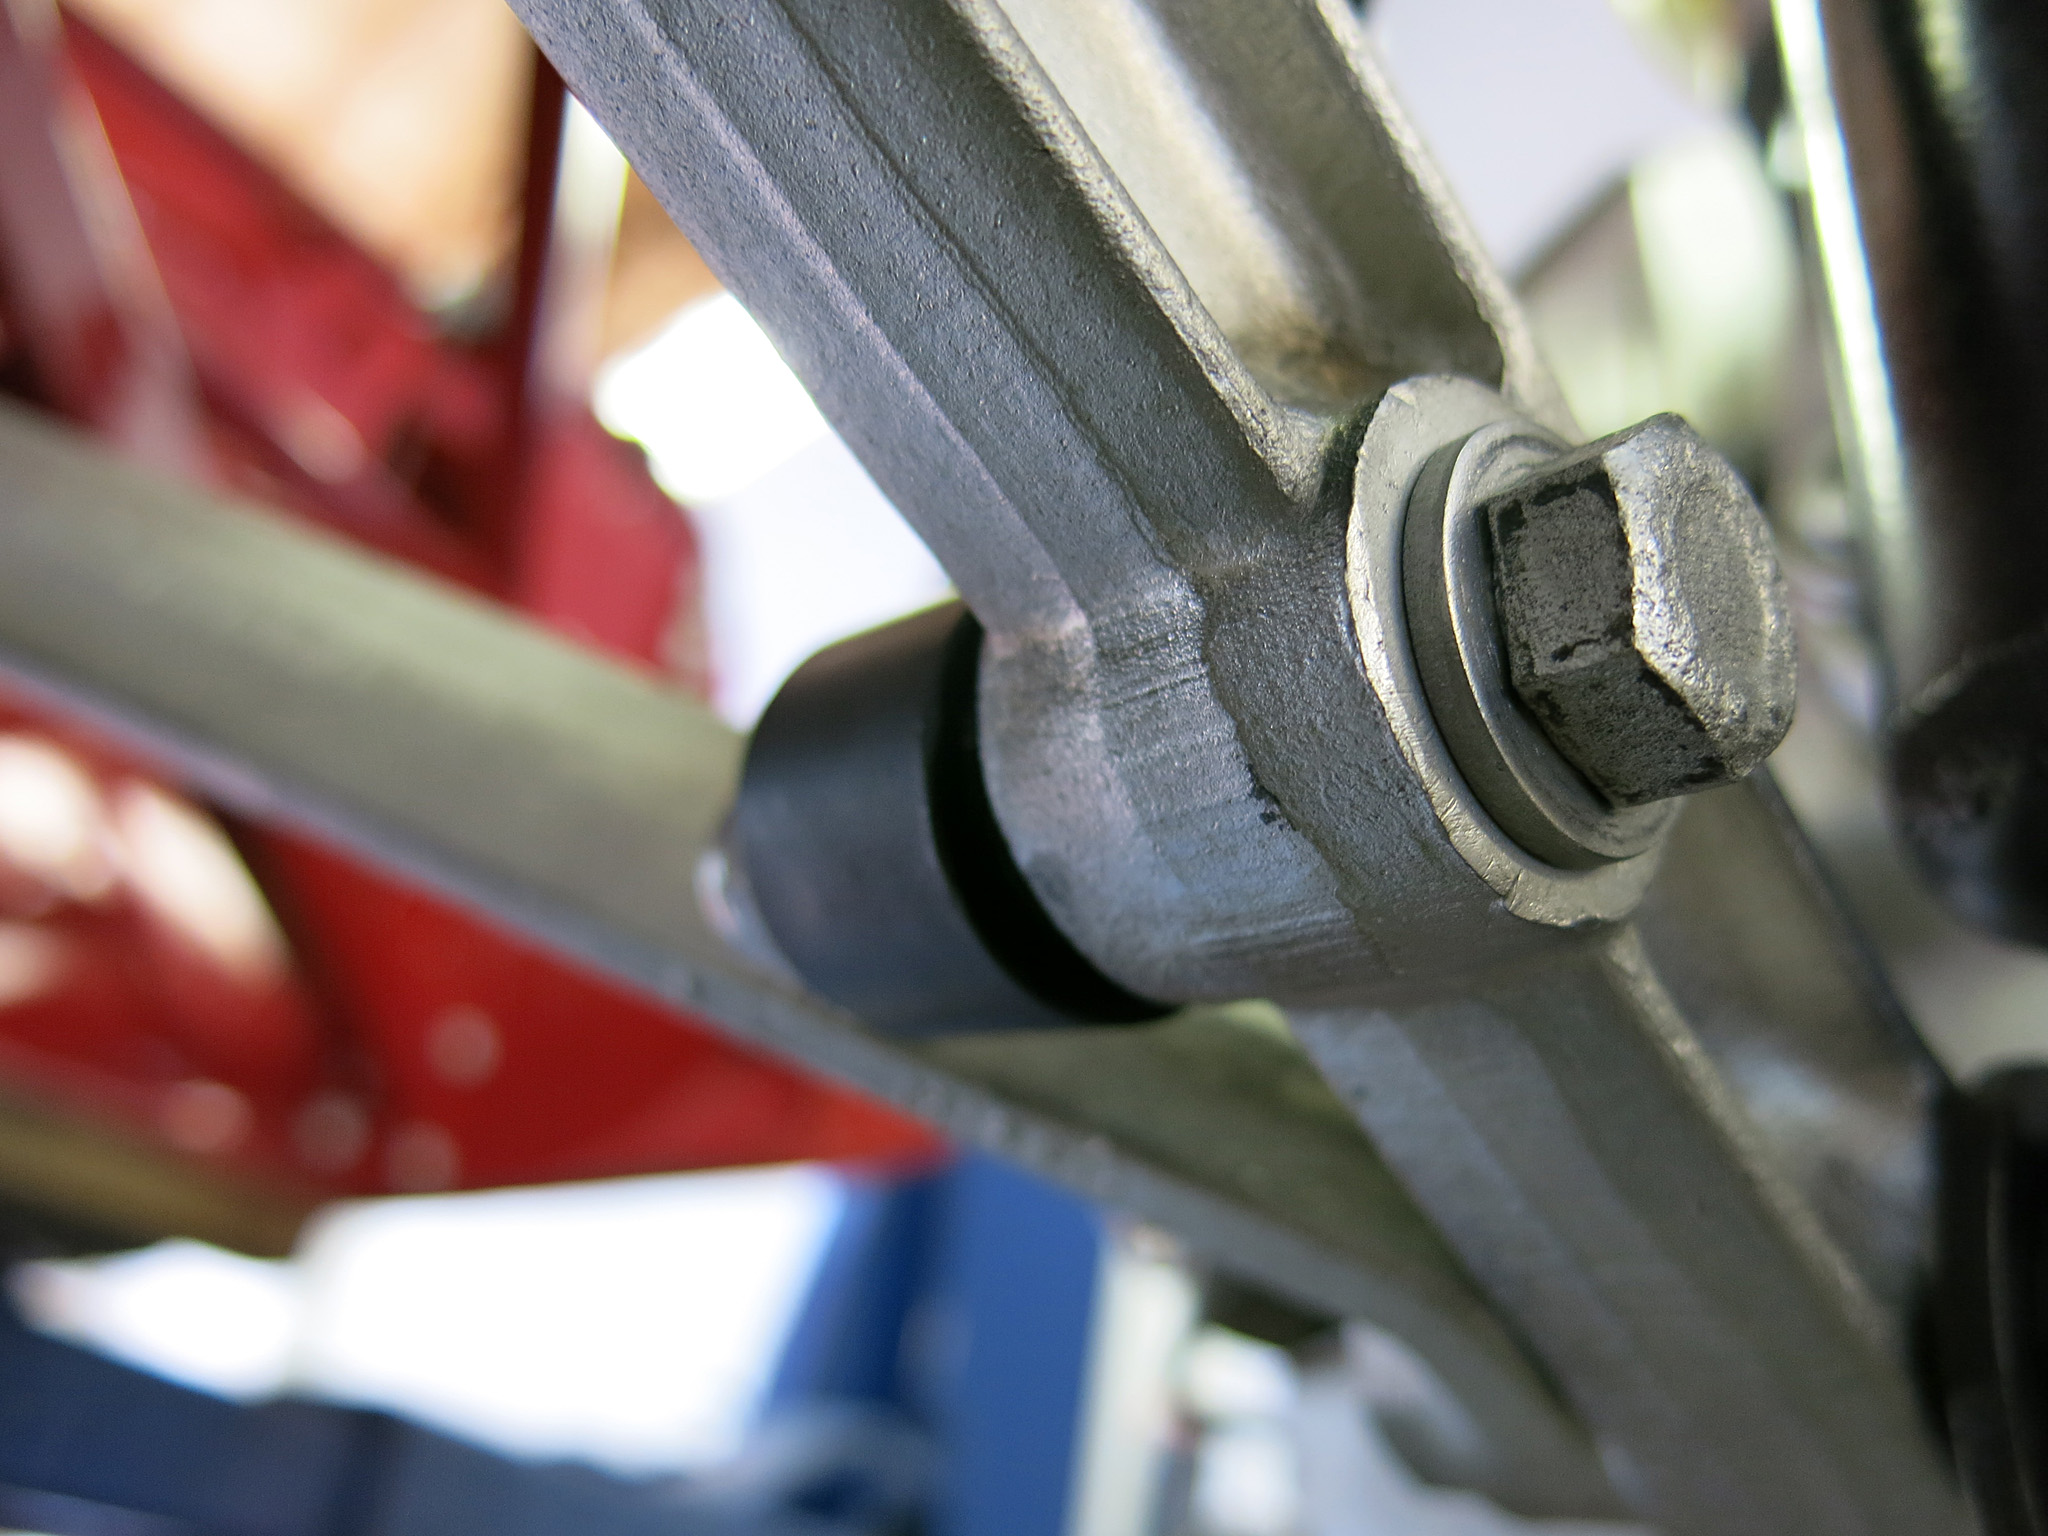 STEP WHATEVER - Mount up the sway bar with the links that extend down to the lower control arm.